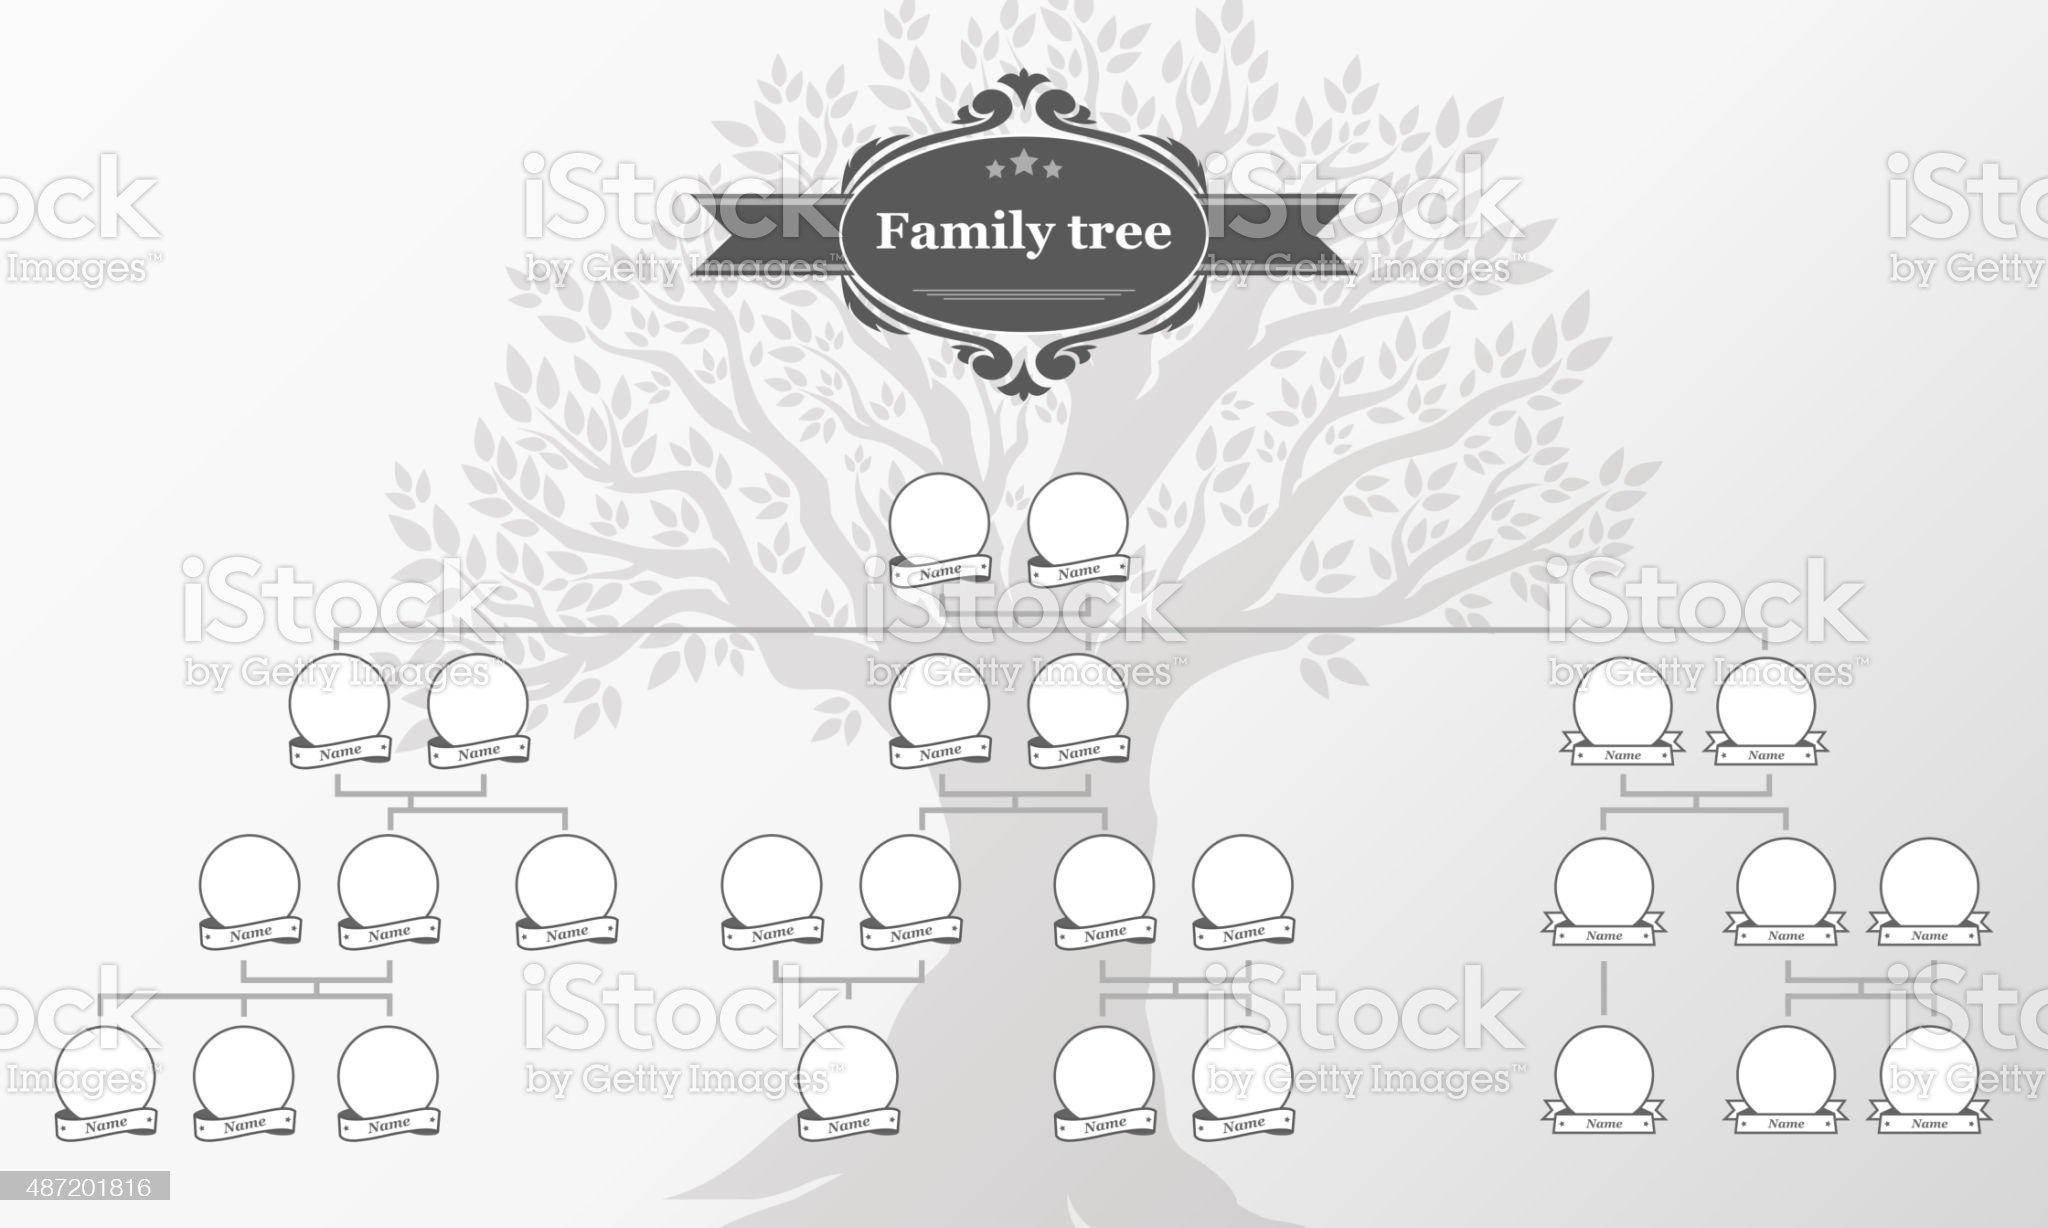 Genealogical tree of your family. royalty-free genealogical tree of your family stock vector art & more images of family tree